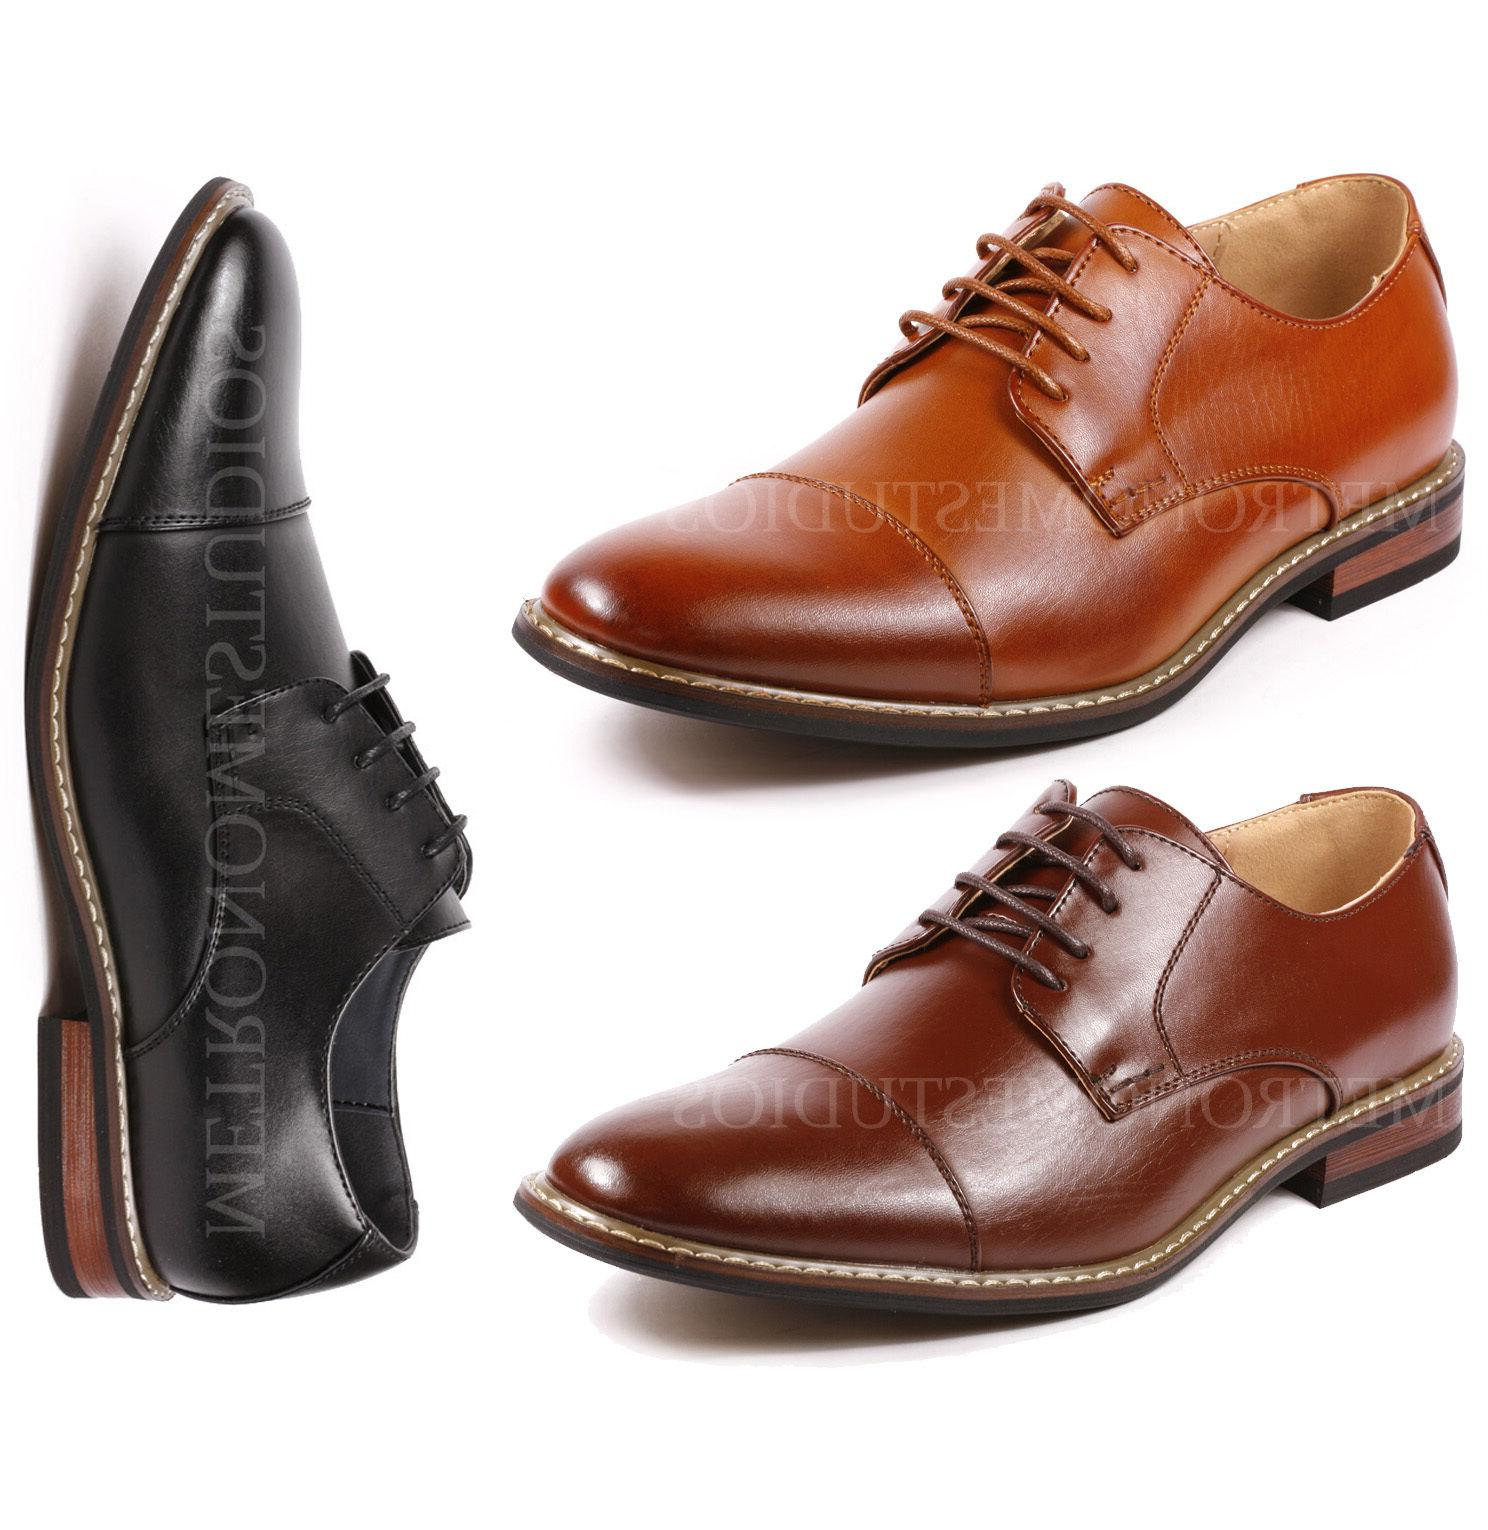 Metrocharm Alex-04 Men's Lace Up Cap Toe Oxford Dress Shoes